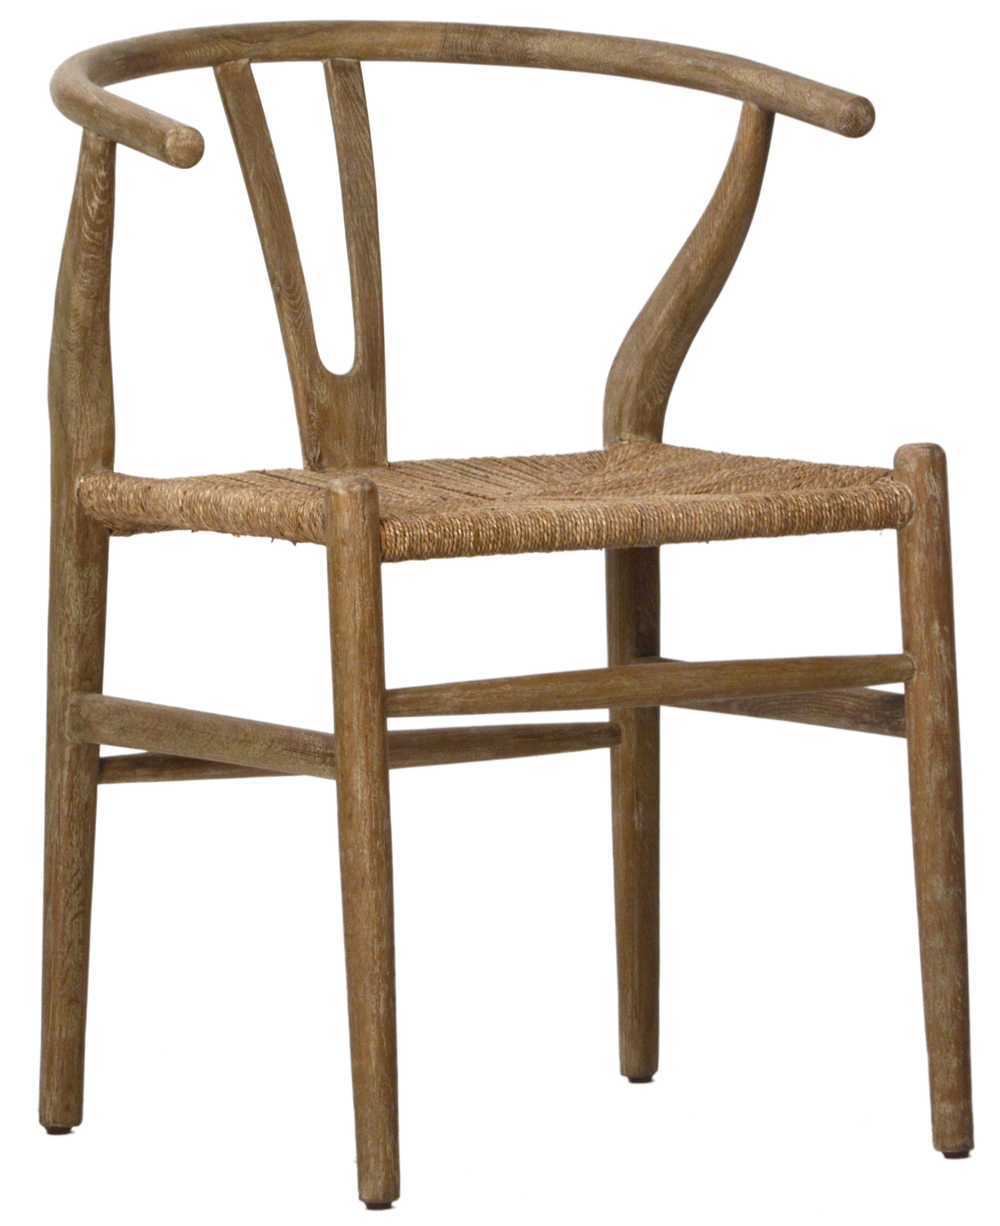 Dovetail Furniture - Moya Dining Chair